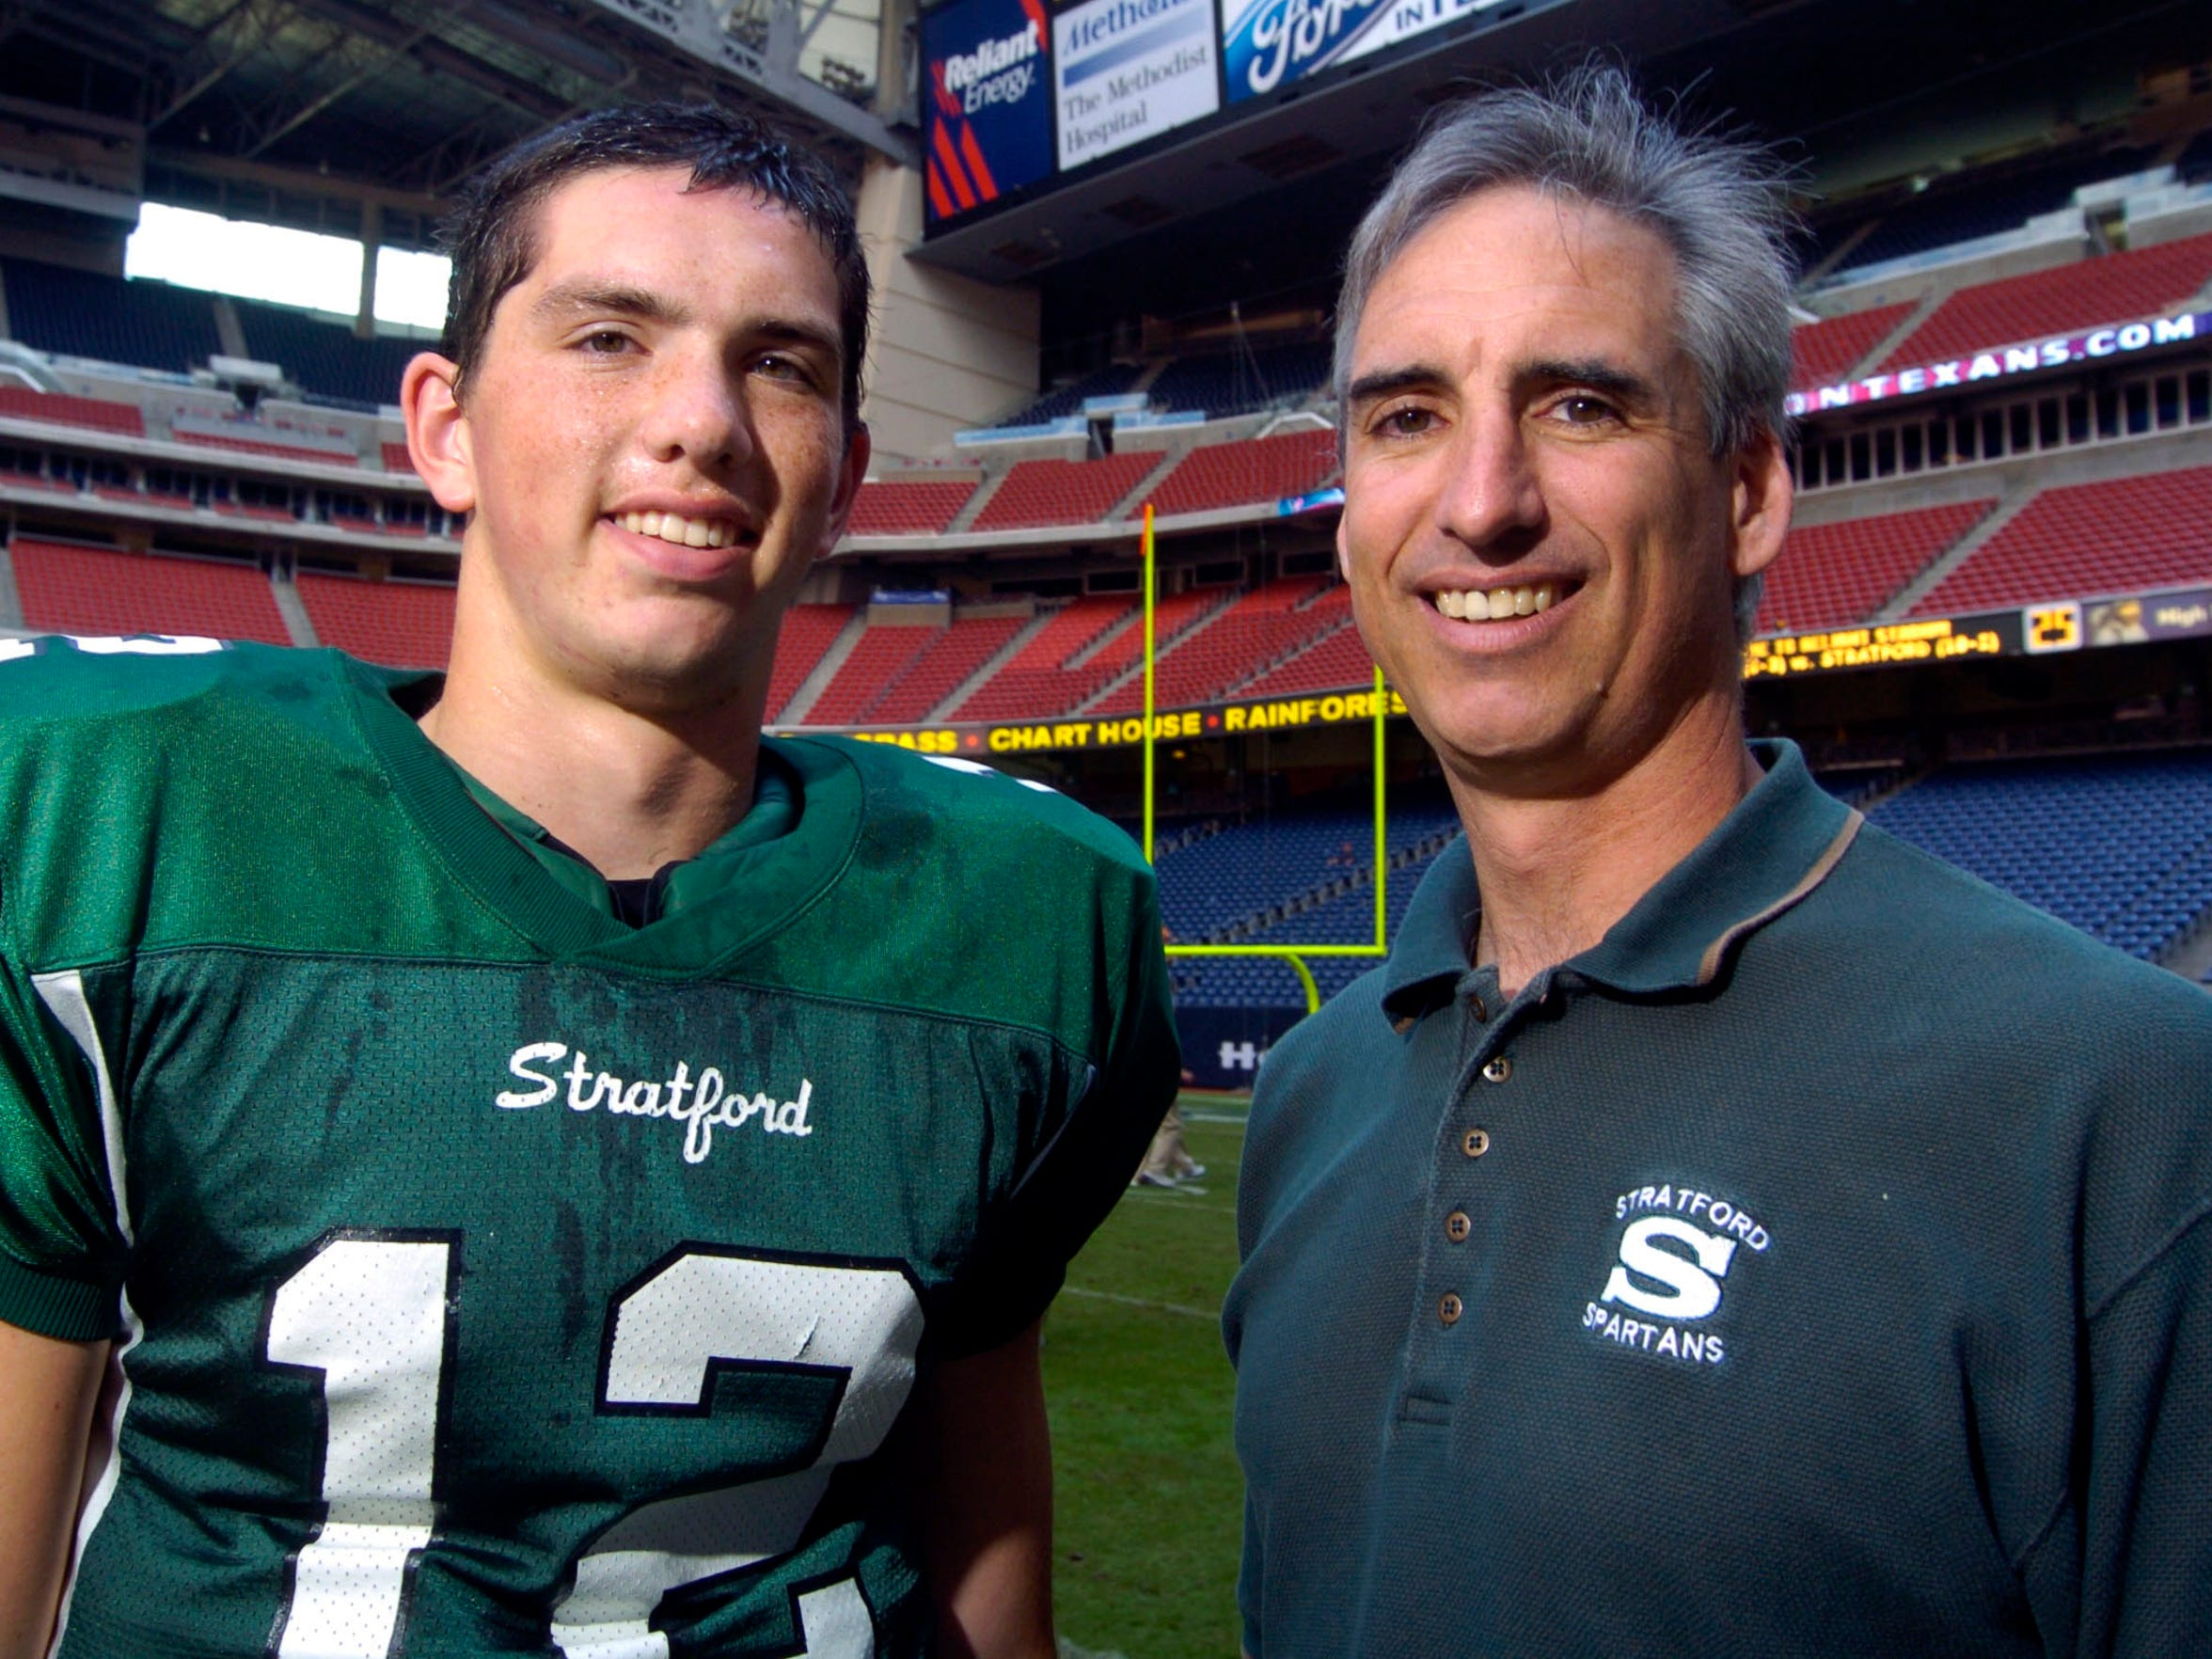 Andrew Luck's first football coach? His dad, who put him at defensive end. But when Andrew went out for the school team, Oliver backed off.